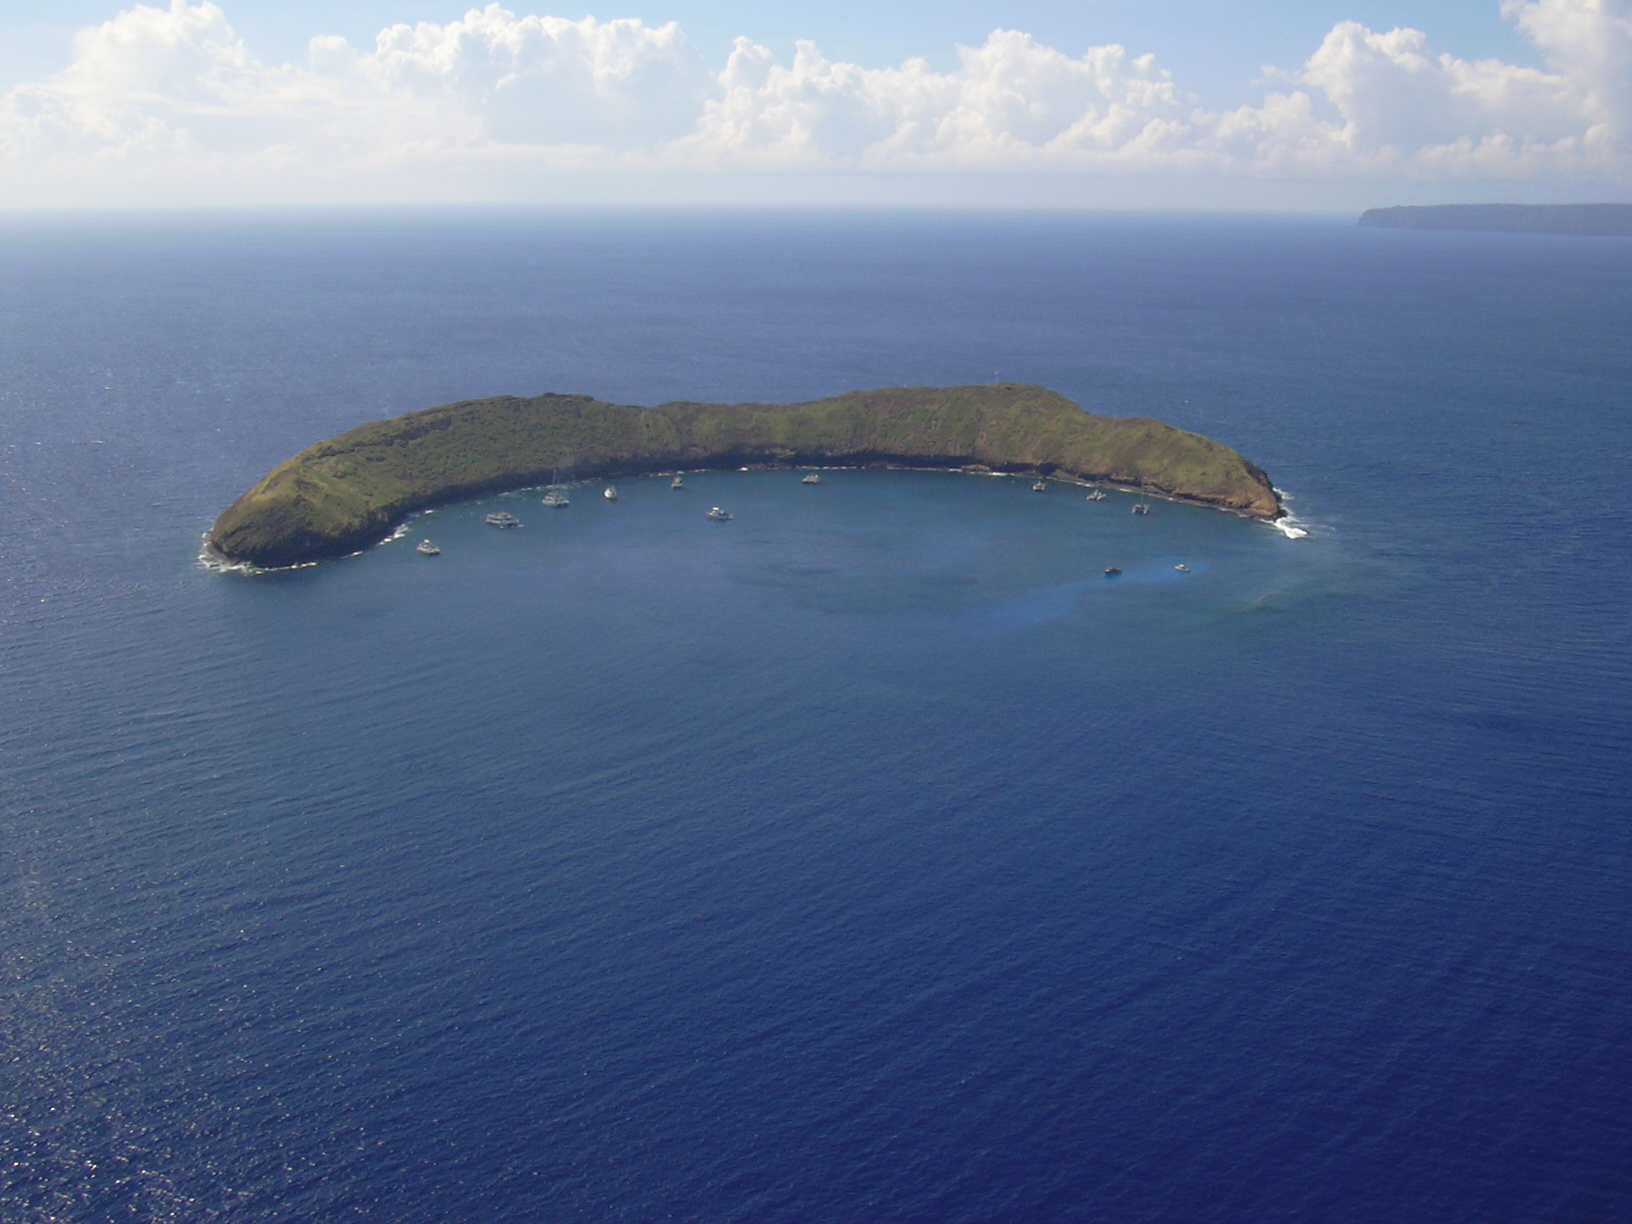 Starr_041014-0402_Molokini_-_General_View_in_October_2004